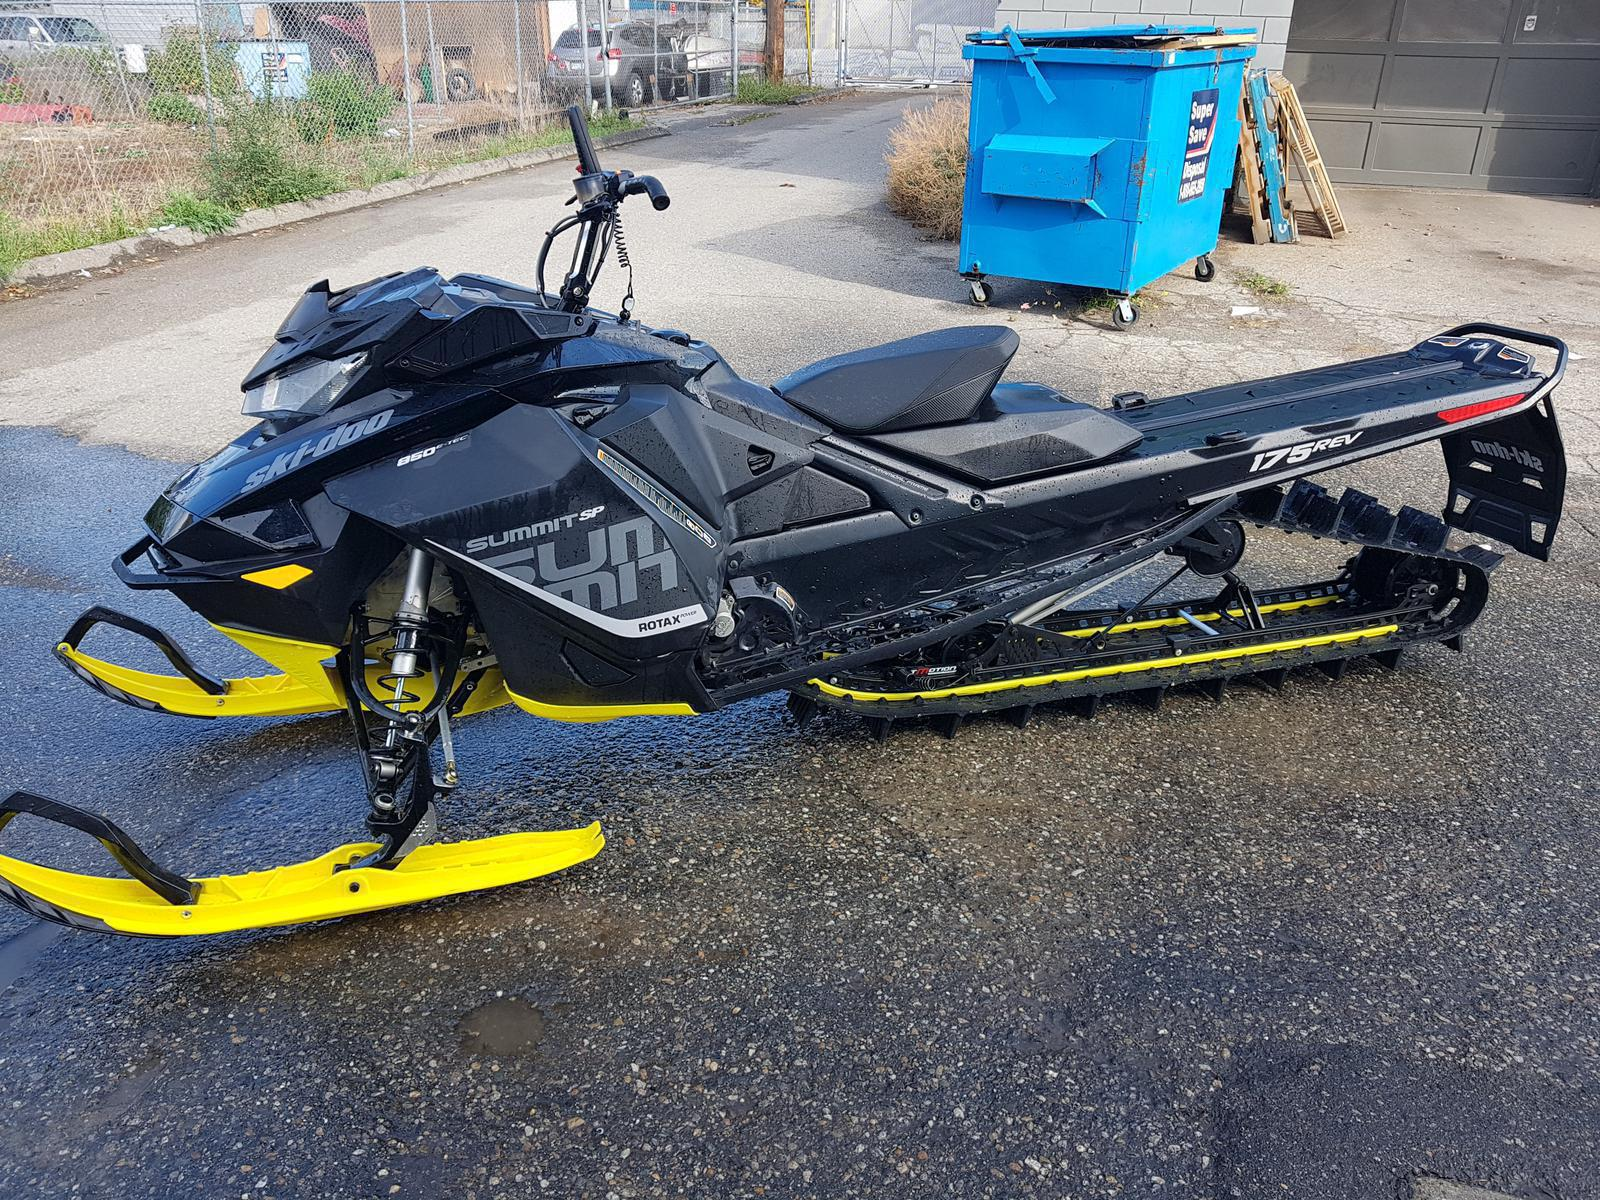 2018 Ski Doo Summit Sp 850 175 3